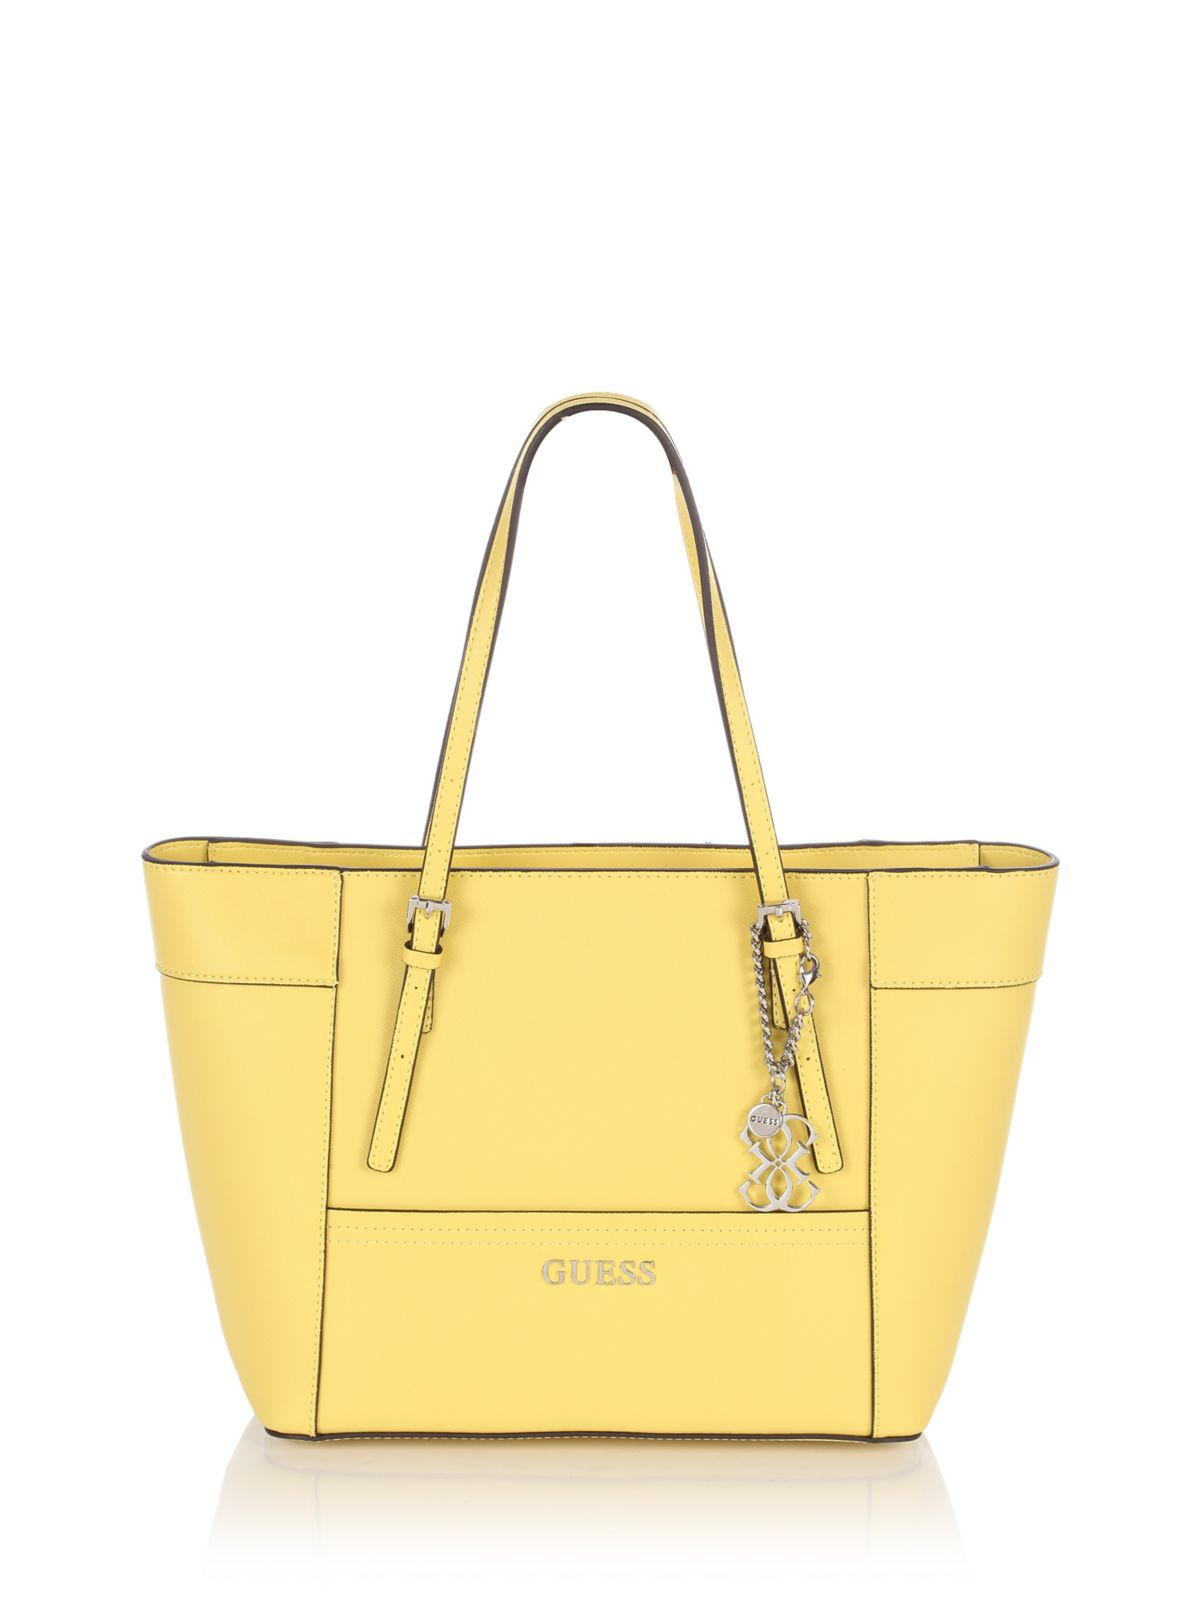 Guess Delaney Small Classic Tote Bag in Yellow 1a9f0135a2466